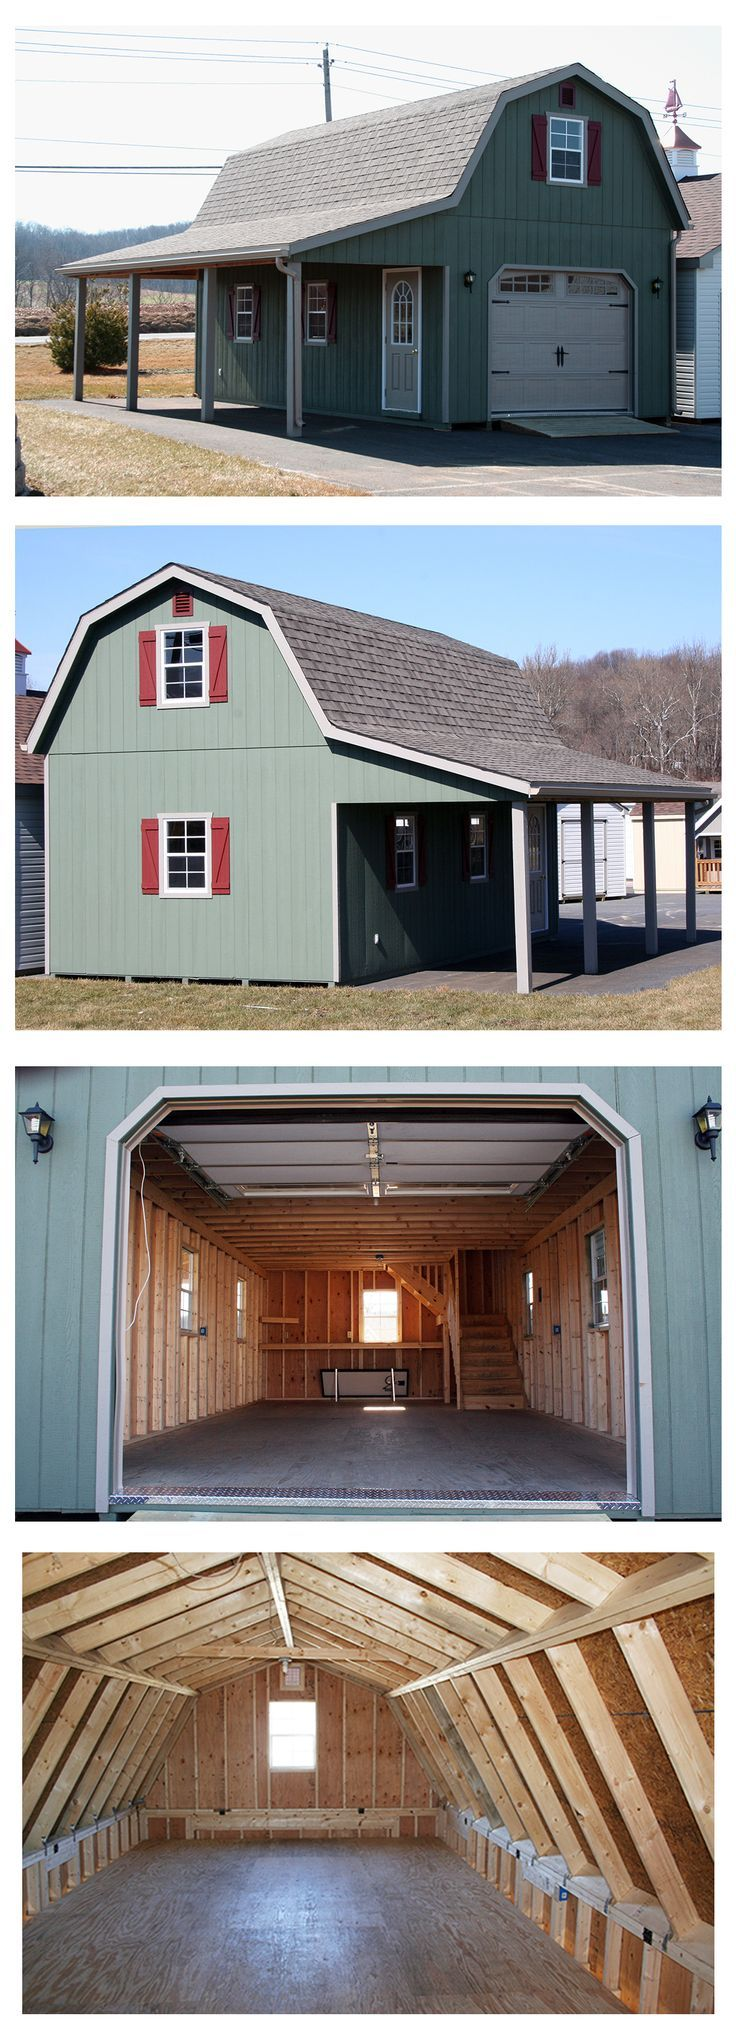 14 Wide X 28 Long With An 8 Overhang The Gambrel Quot Barn